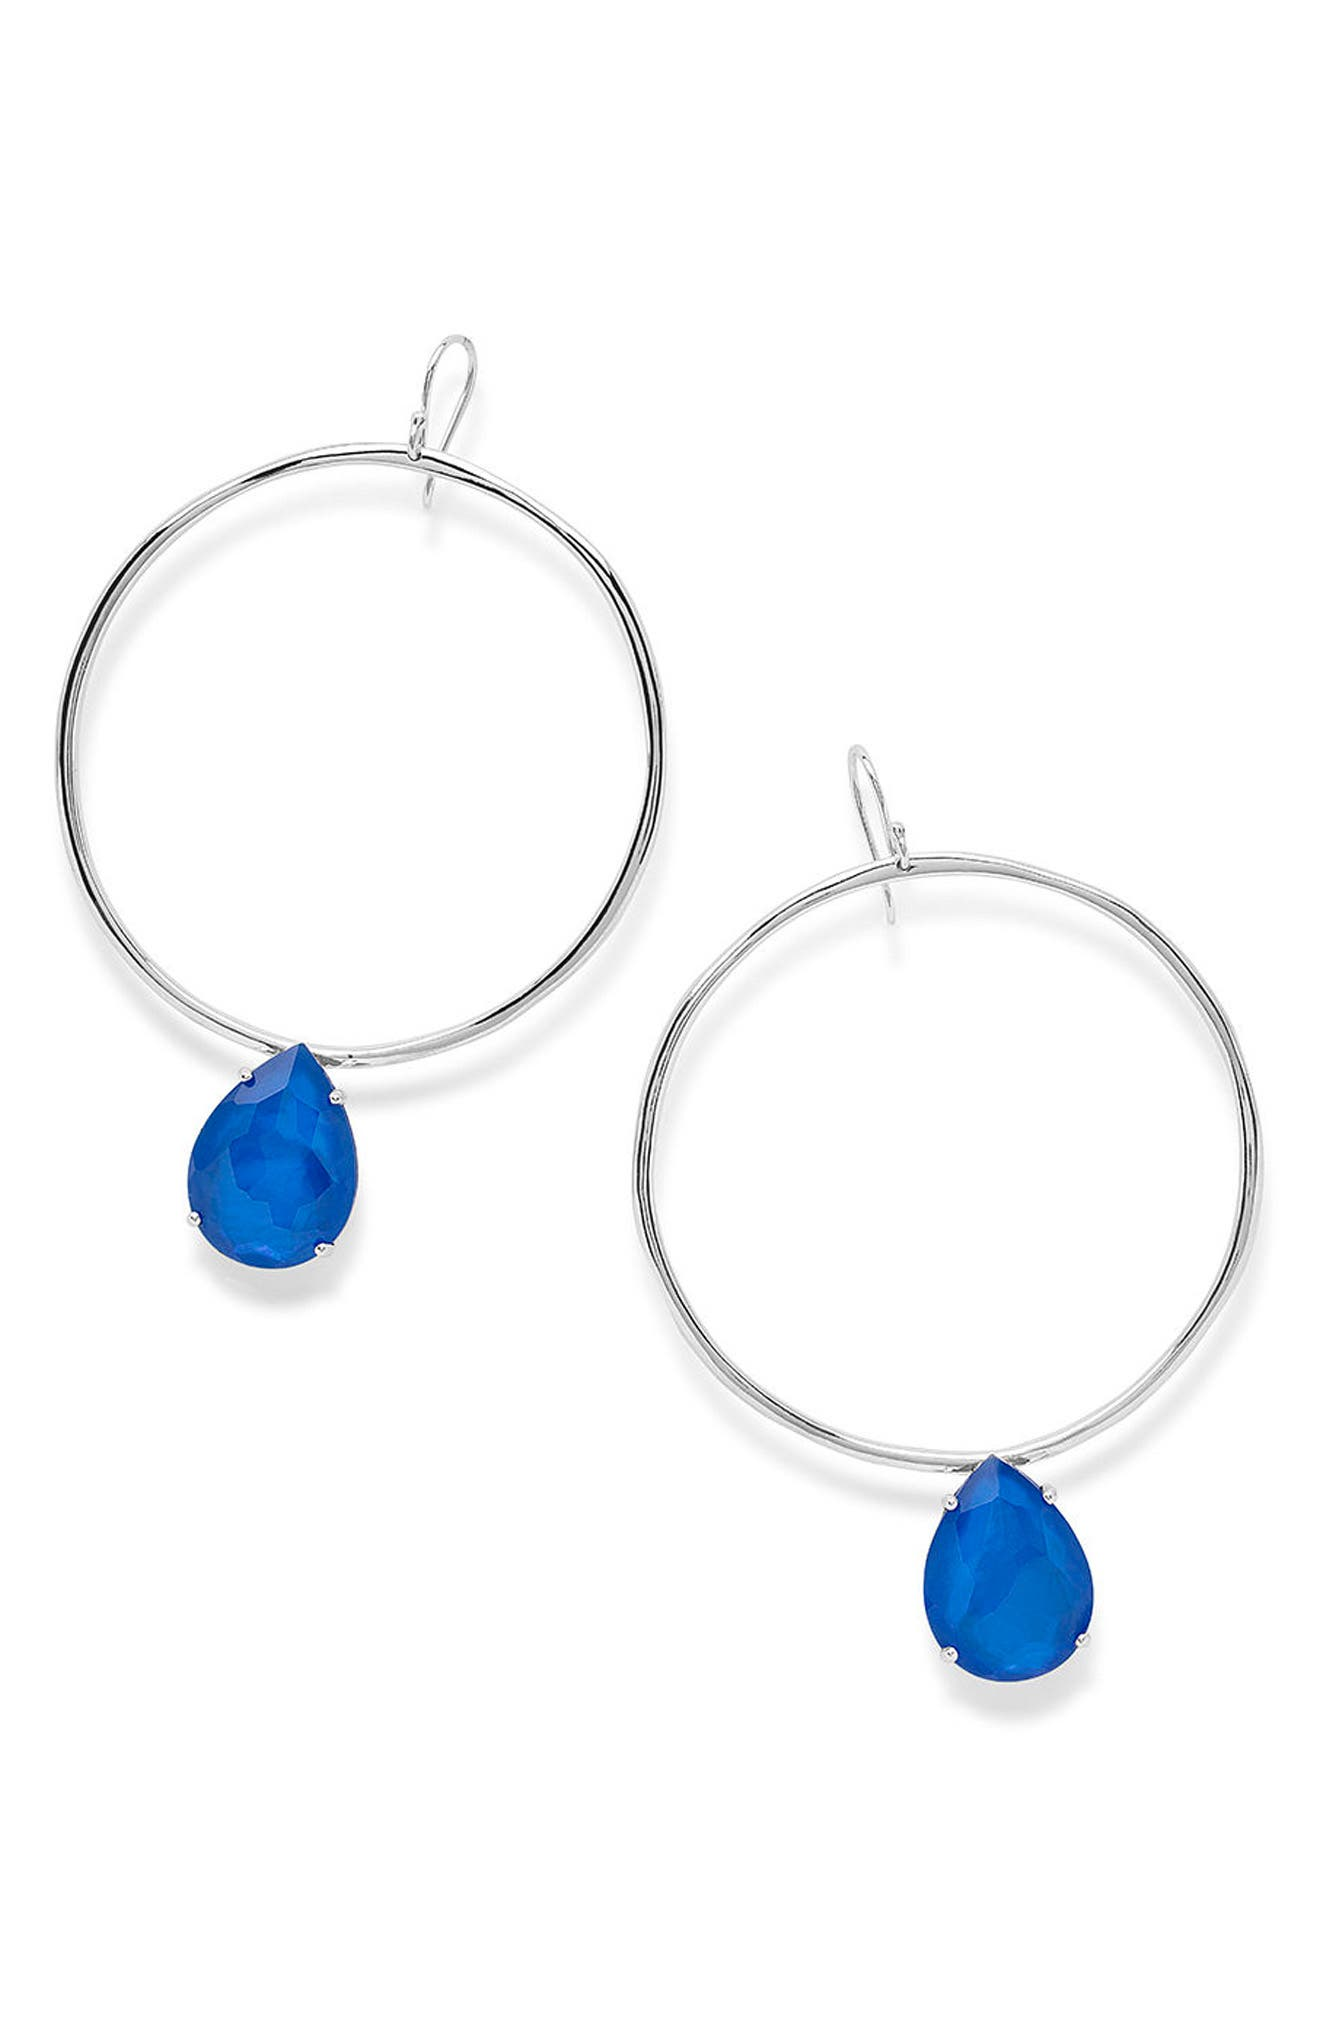 Wonderland Large Frontal Hoop Earrings,                         Main,                         color, 400